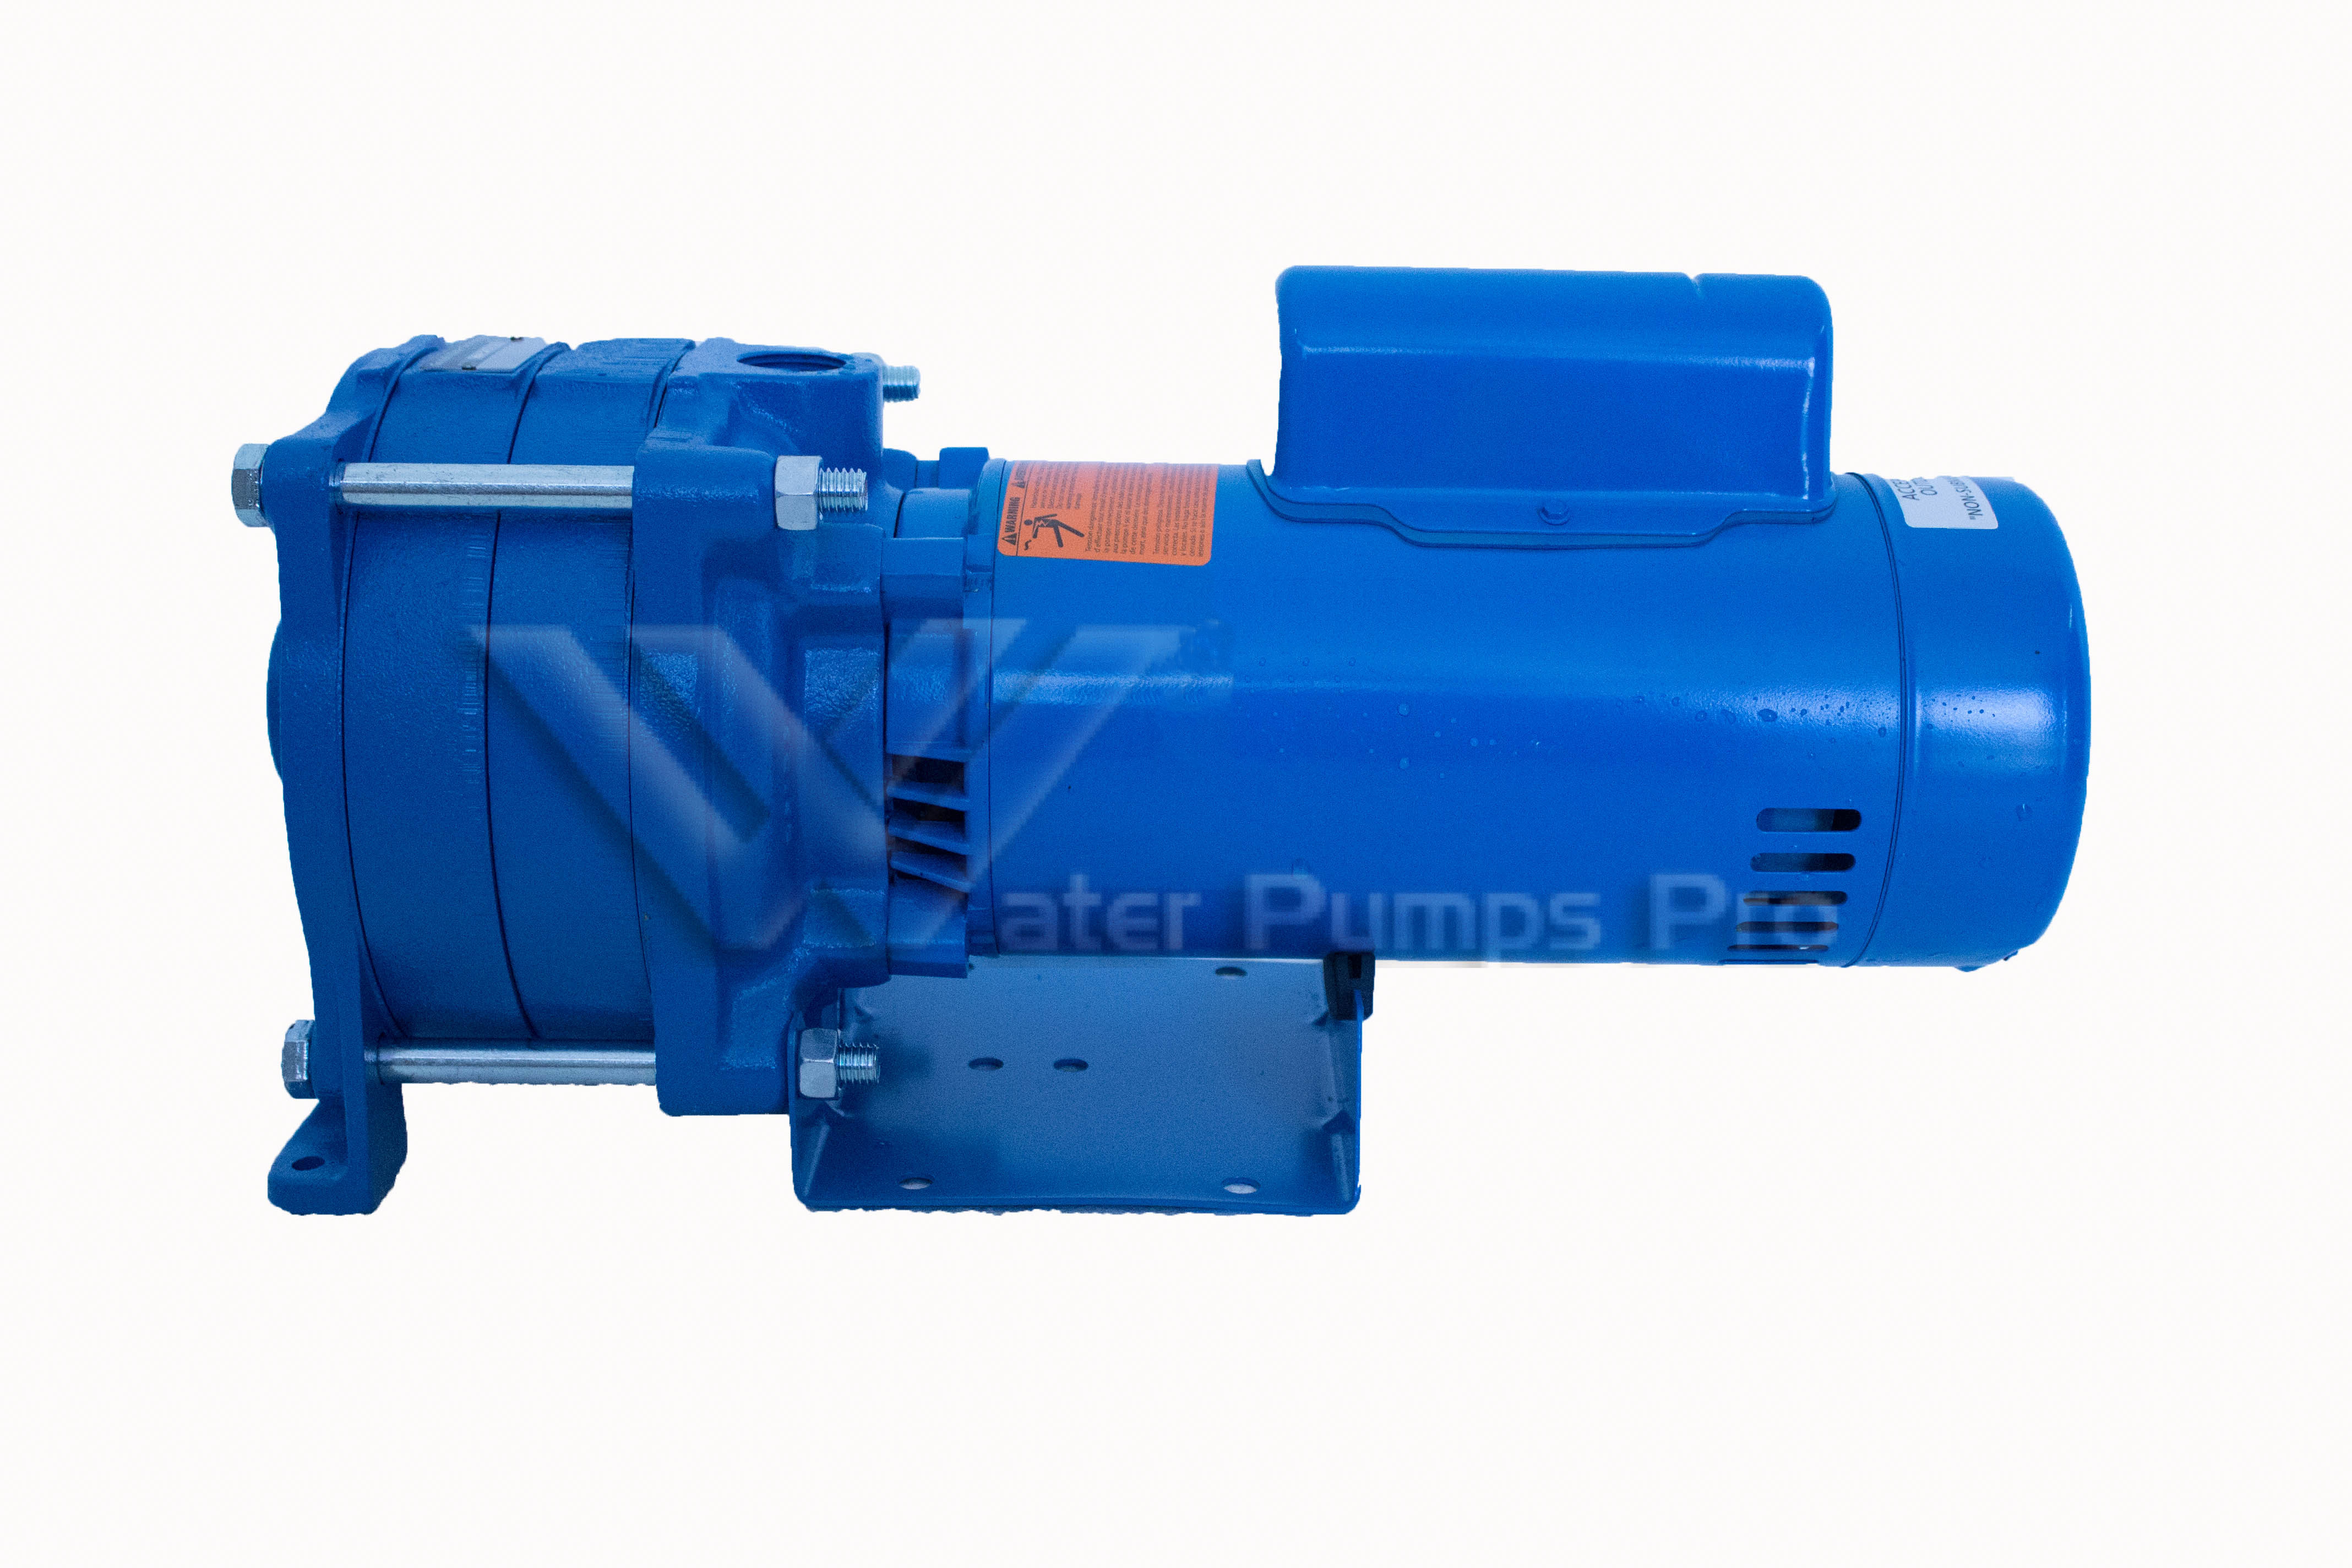 3 Stages 115//230 V Single Phase Goulds HSC30 Multi-Stage Centrifugal Pump ODP Enclosure. 3 HP